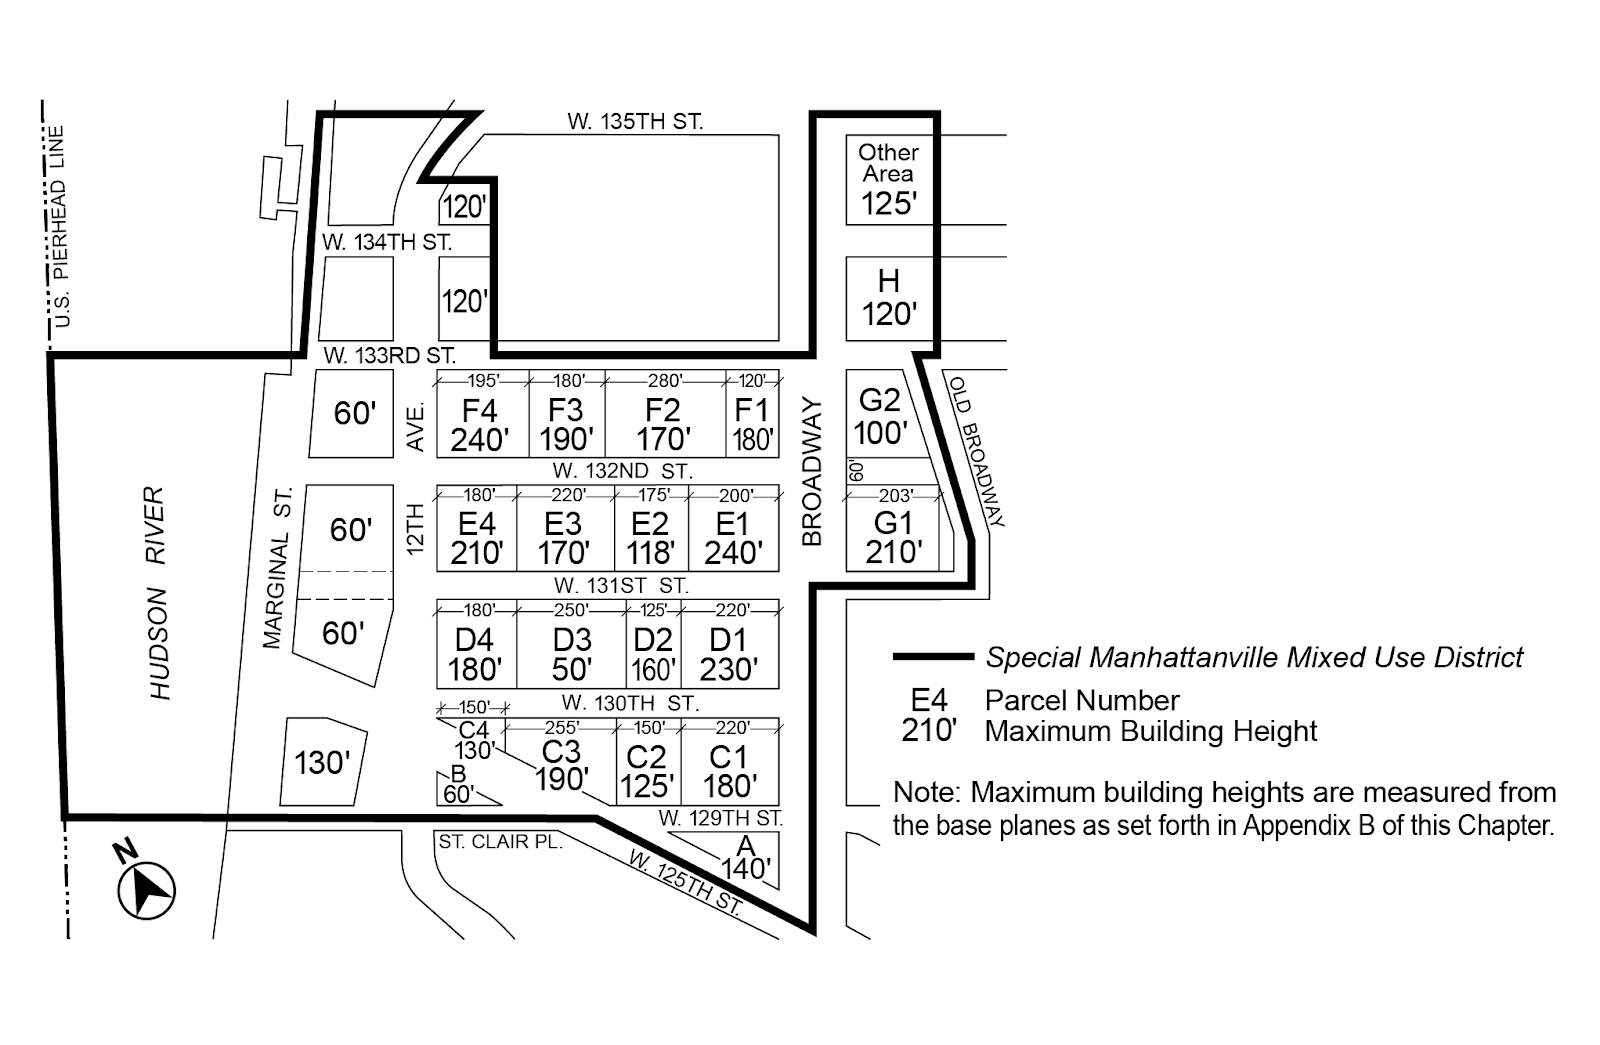 Zoning Resolutions Chapter 4: Special Manhattanville Mixed Use District Appendix A.4